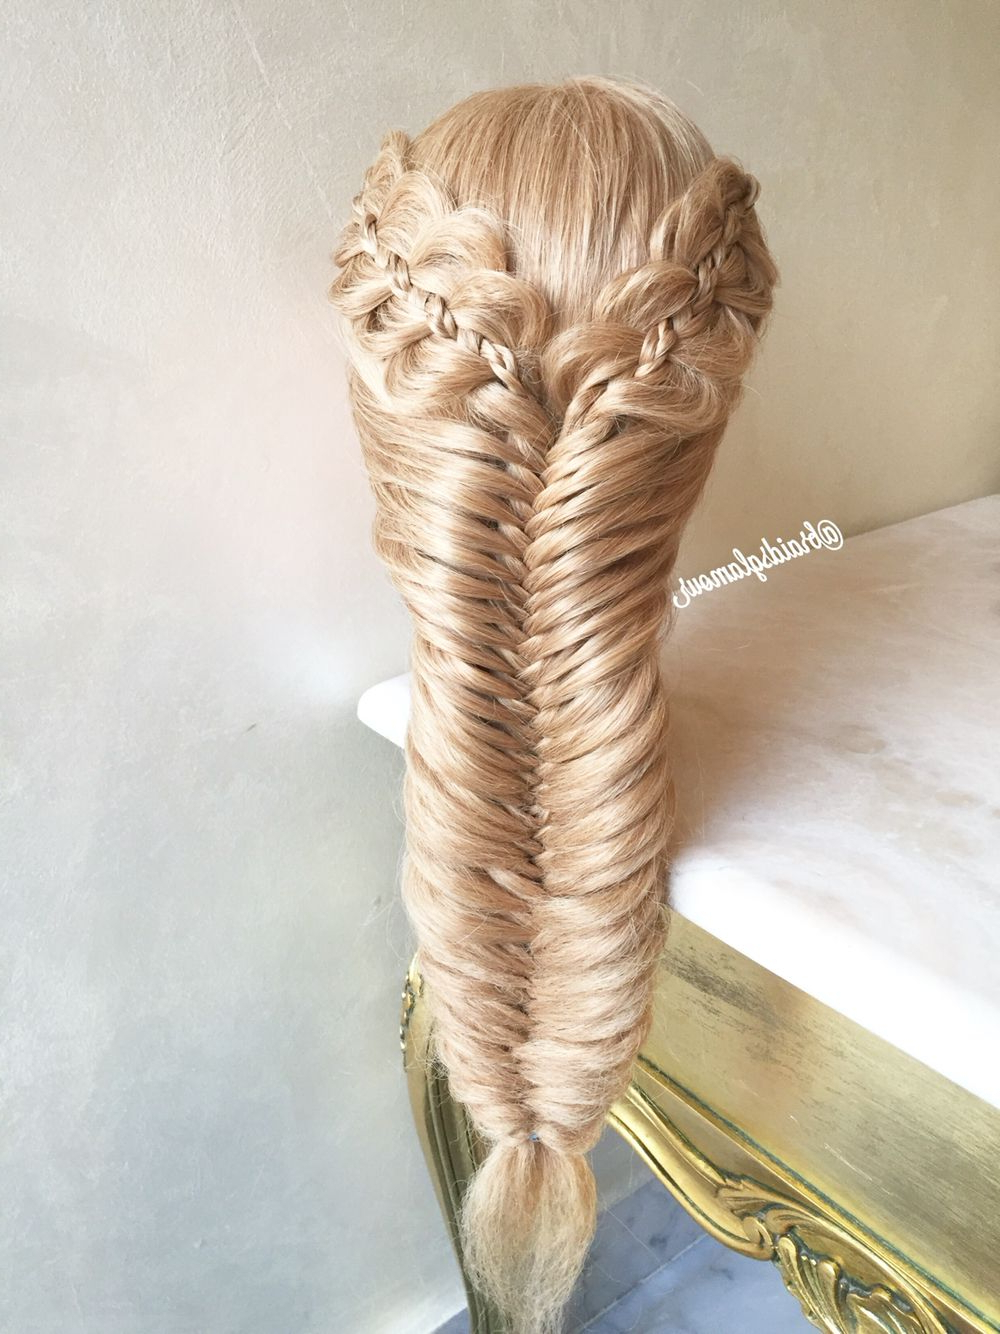 Pin On My Braids Intended For 2019 Mermaid Braid Hairstyles With A Fishtail (View 3 of 20)